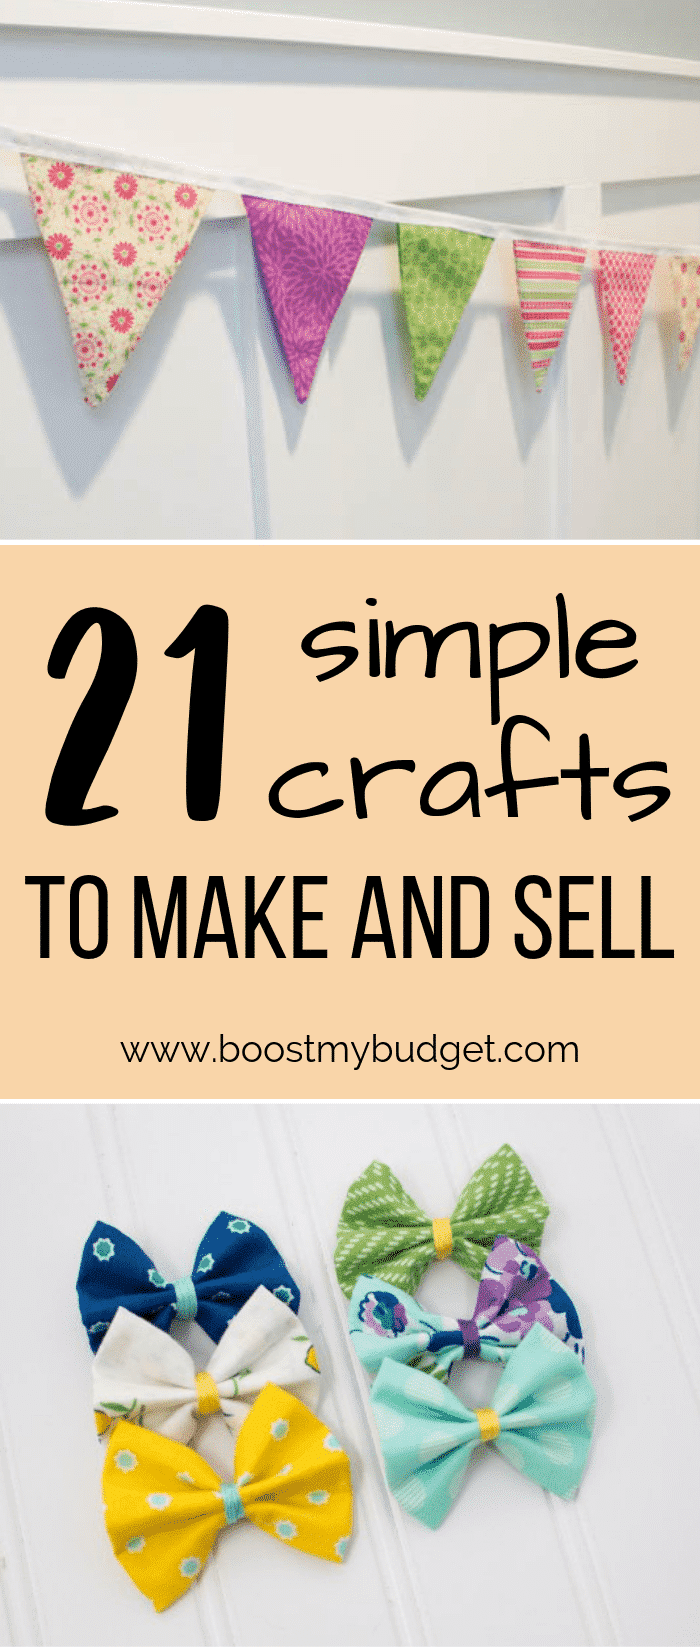 Looking for a unique home business idea? How about making crafts to sell online? These cheap and easy craft projects will sell for money, and they're so easy, adults and children alike can make them!